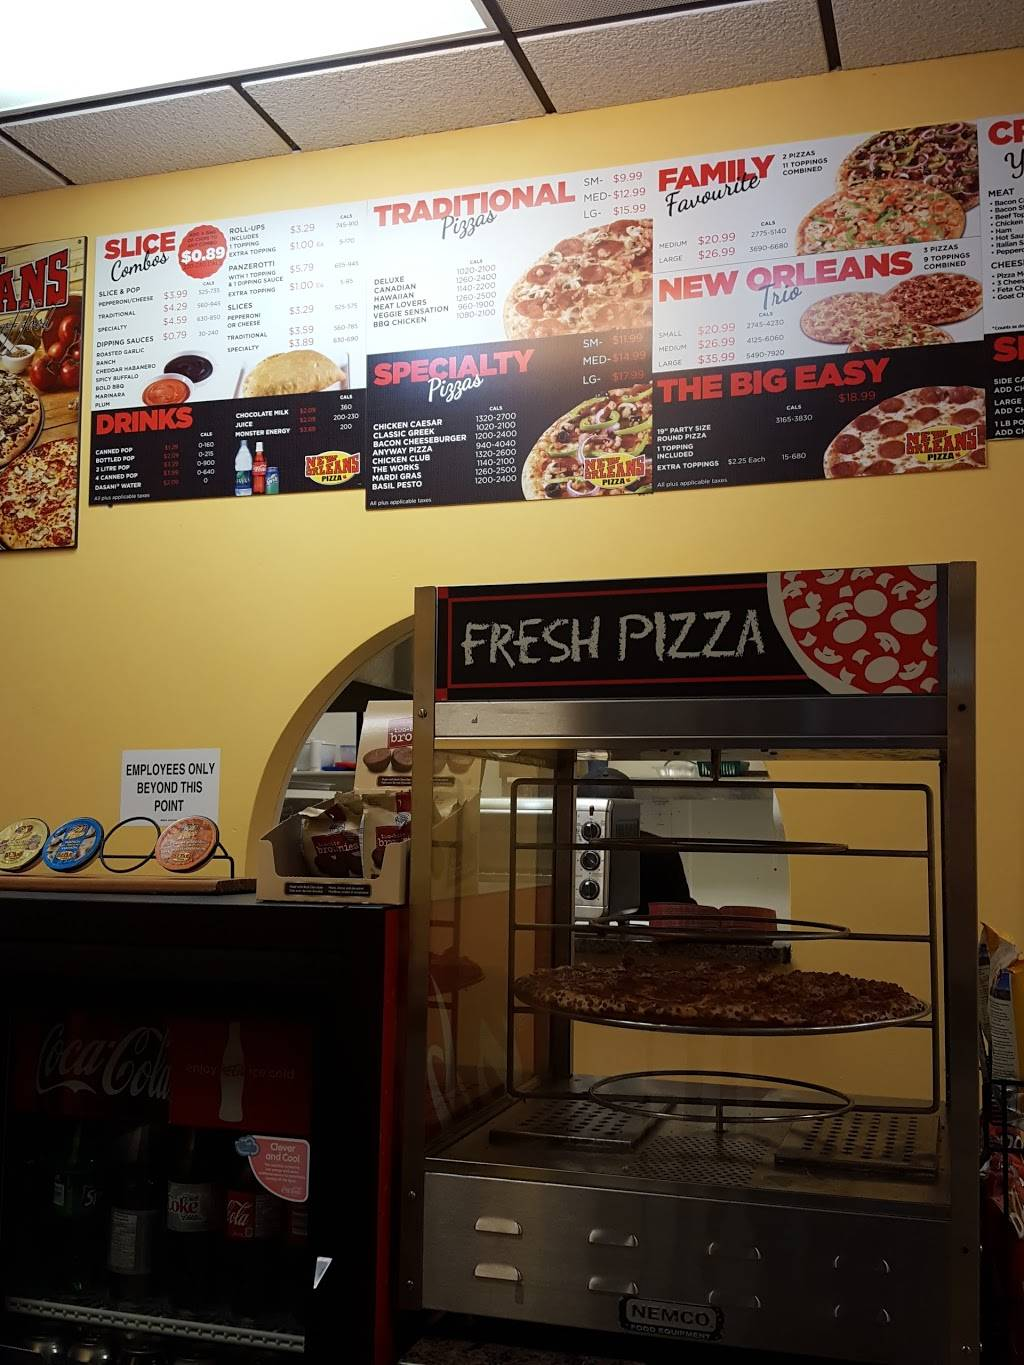 New Orleans Pizza | meal delivery | 234 Main St S, Mount Forest, ON N0G 2L2, Canada | 5193234443 OR +1 519-323-4443